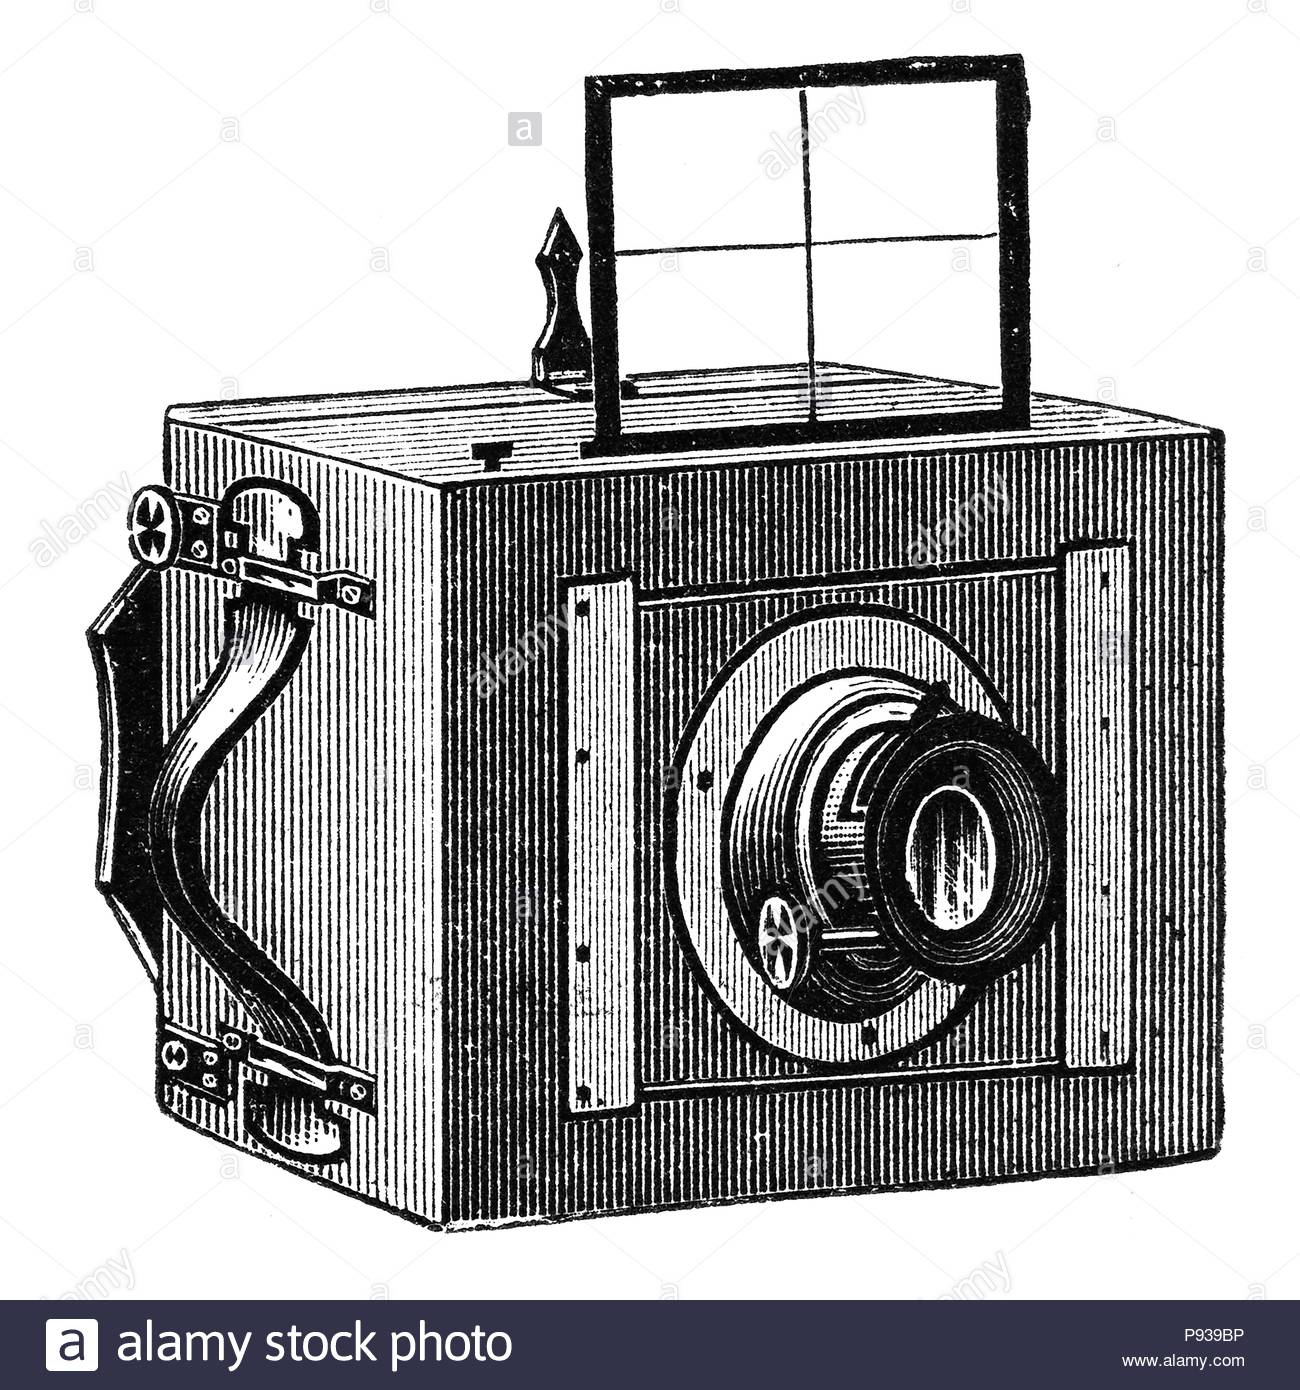 Wooden photographic camera with viewfinder for personal use. Photographic camera illustration published in Brockhaus Konversations Lexicon 14 edition - Stock Image